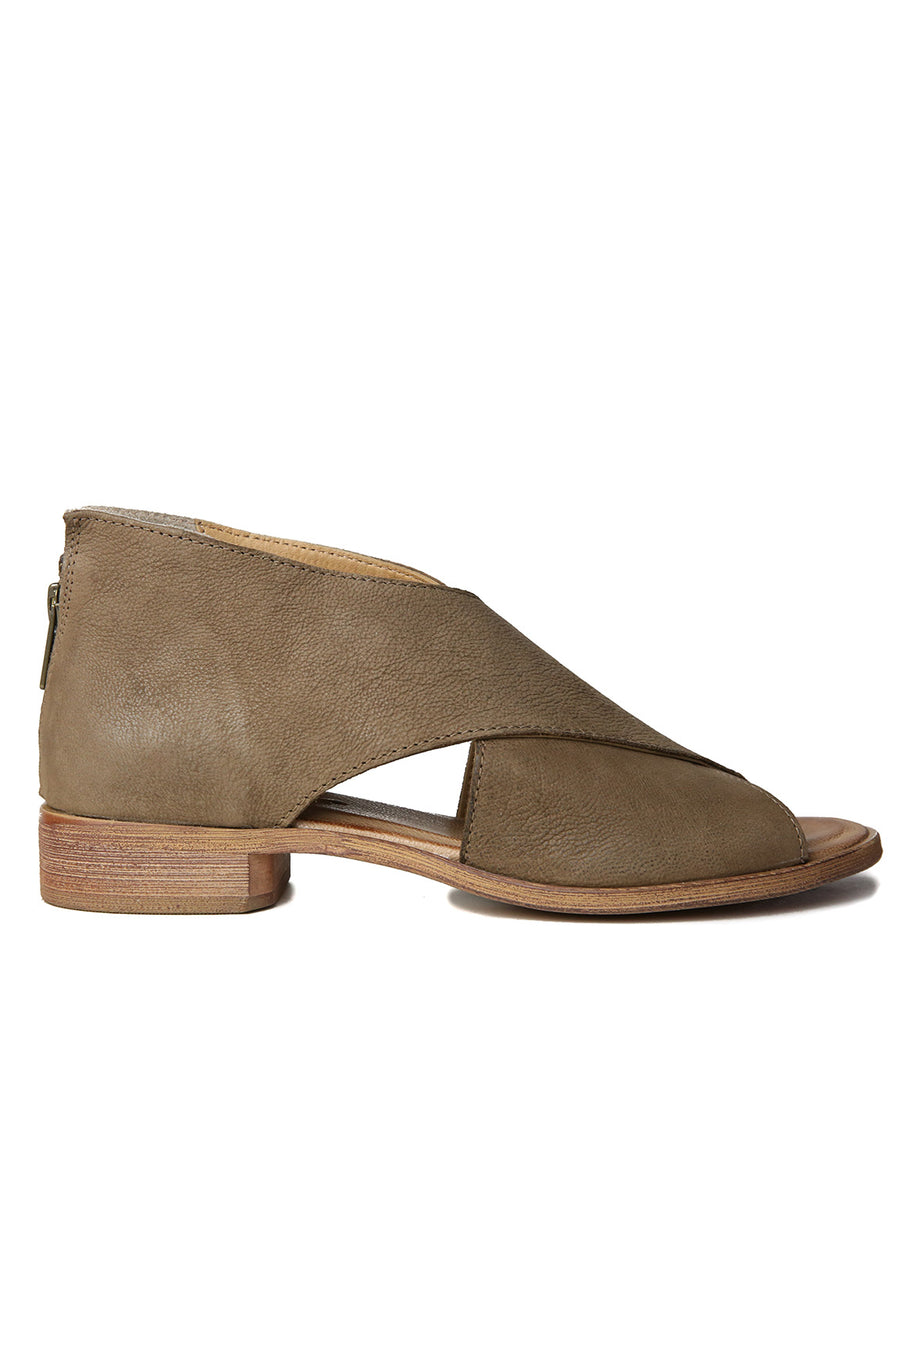 Venice Taupe Leather Wrap Sandal Front